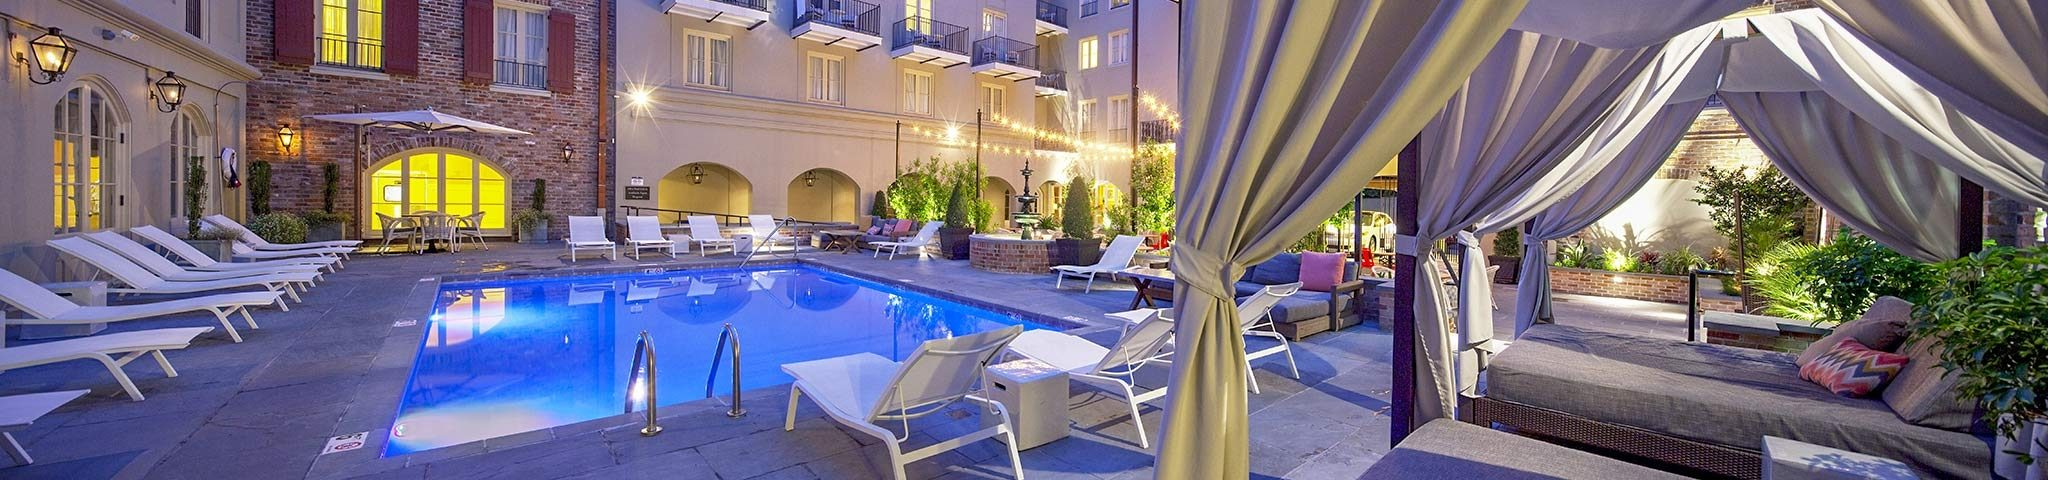 Viewing All Hotels Best New Orleans Hotels